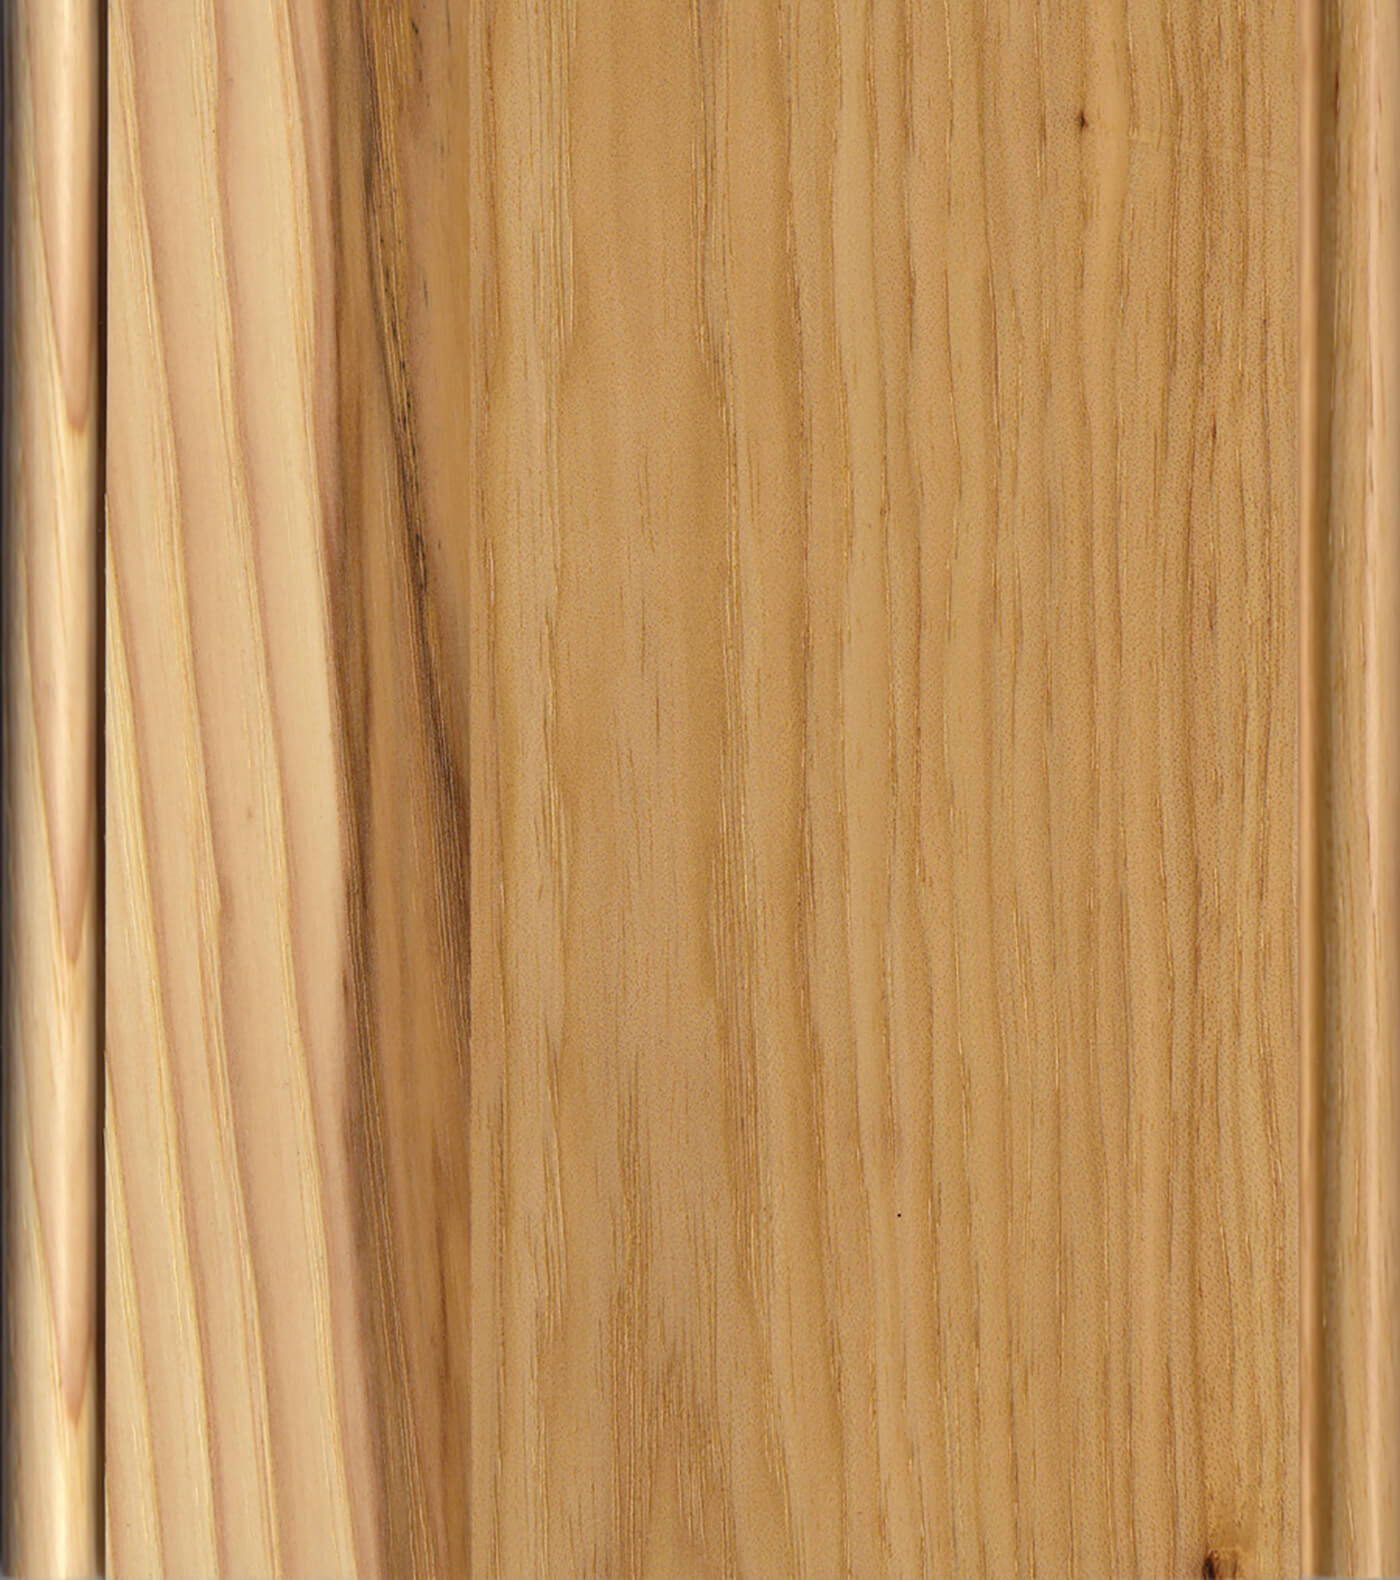 Natural Finish on Hickory or Rustic Hickory